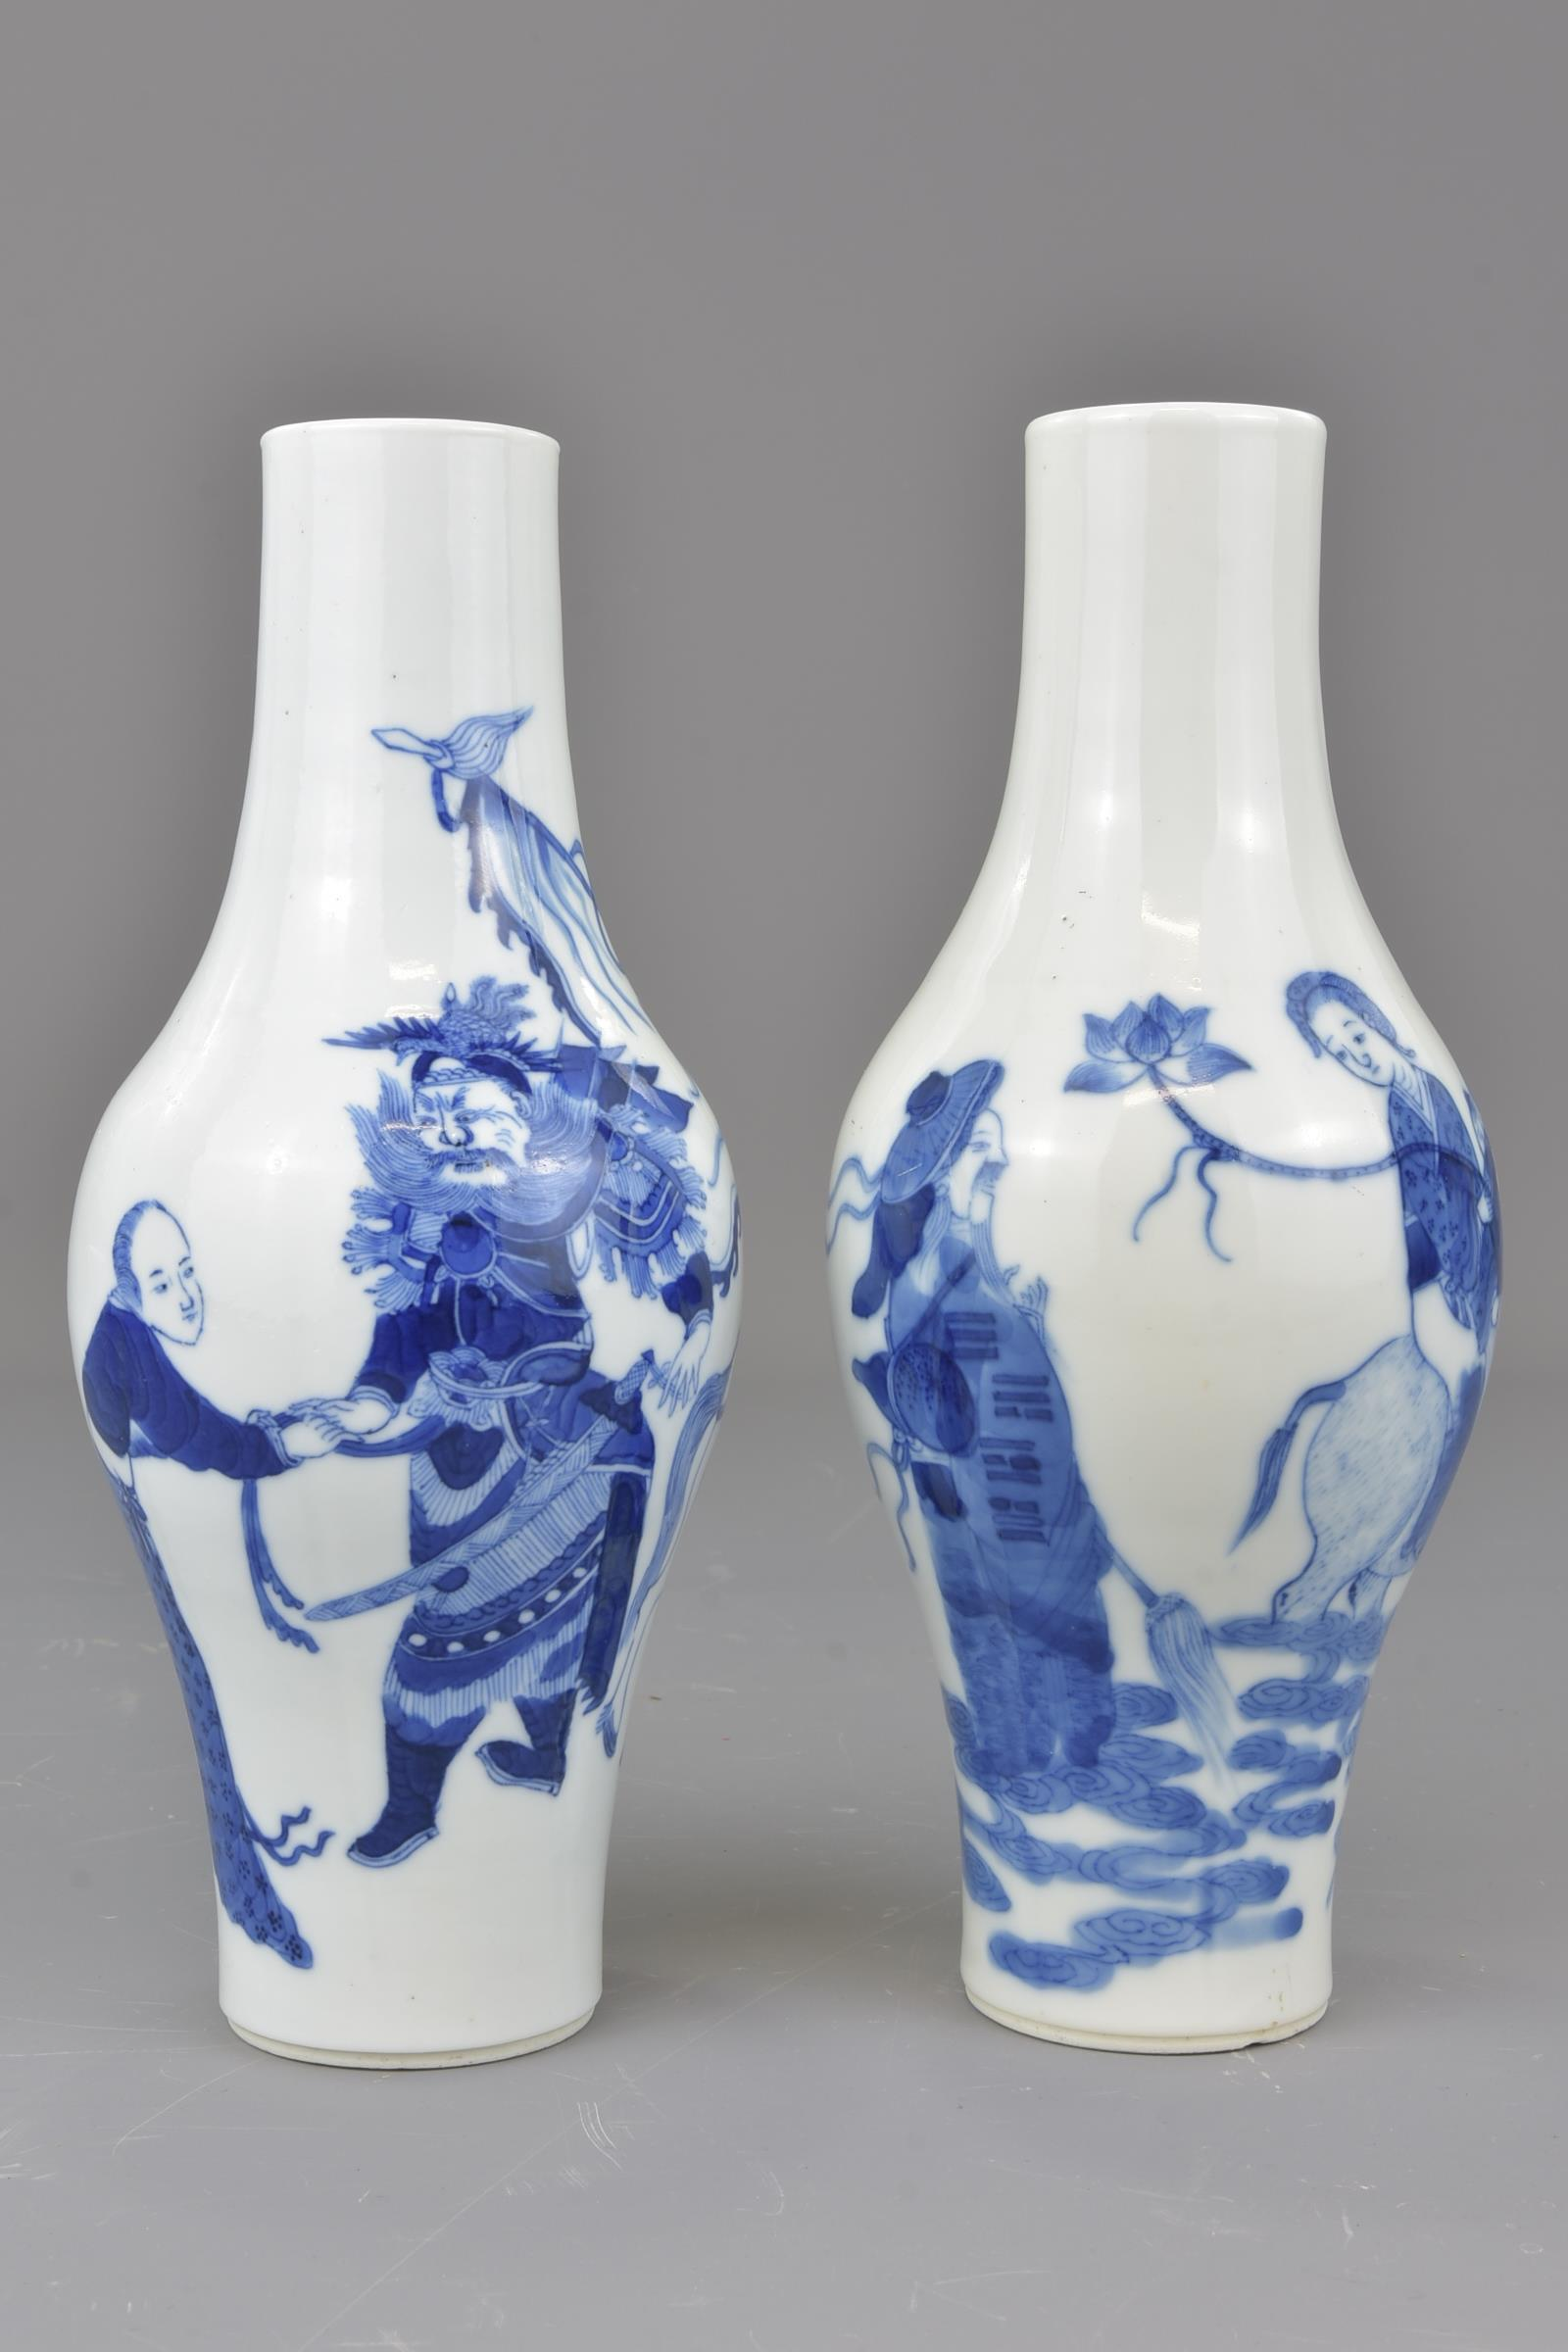 Lot 52 - A fine pair of Chinese 19th century blue and white olive shaped porcelain vases decorated with figur